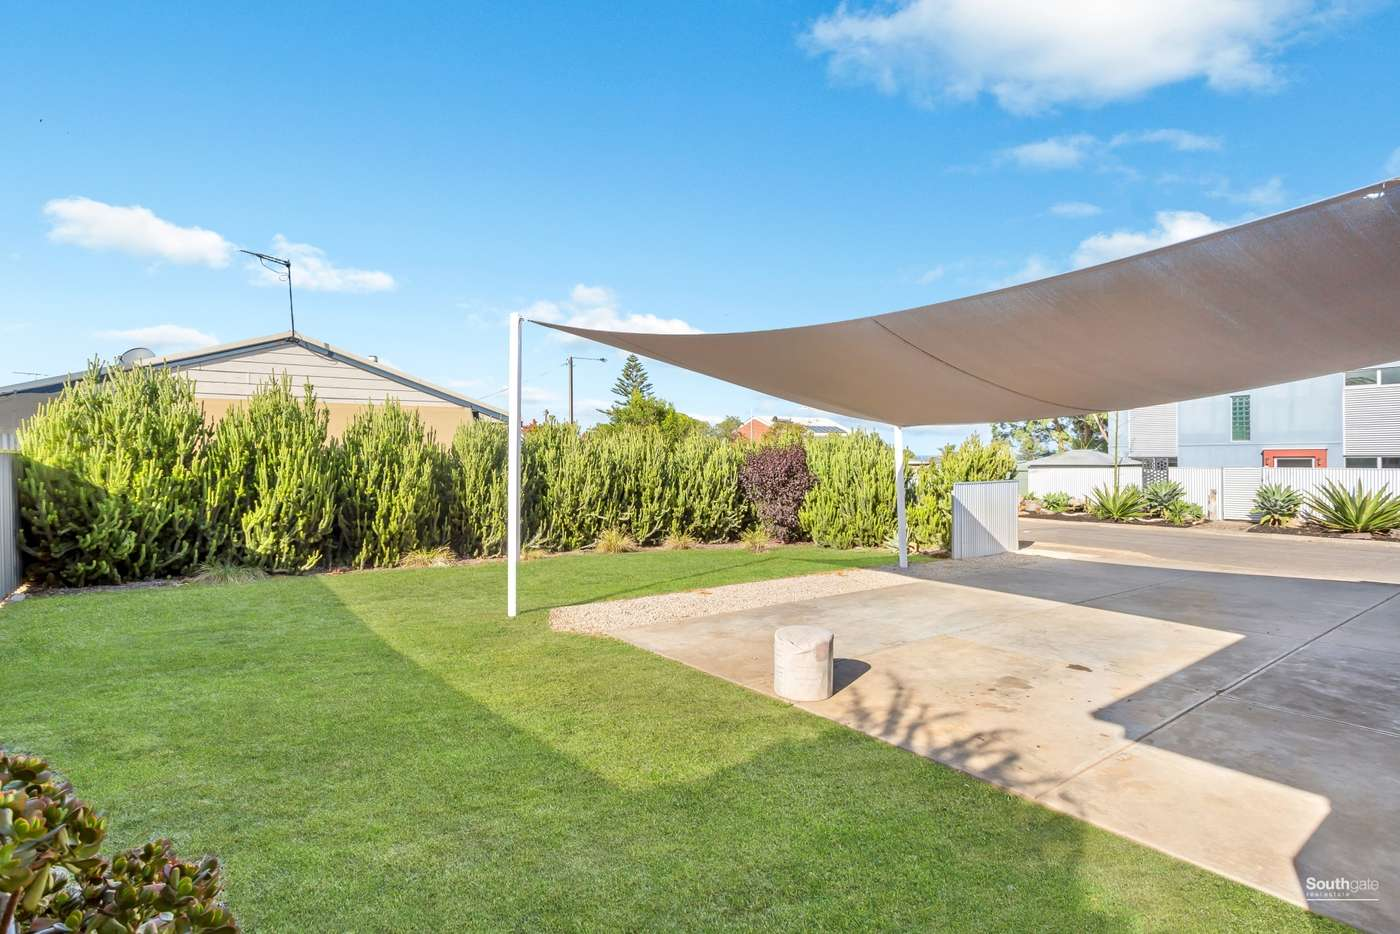 Fifth view of Homely house listing, 3/38 Ferris Street, Christies Beach SA 5165